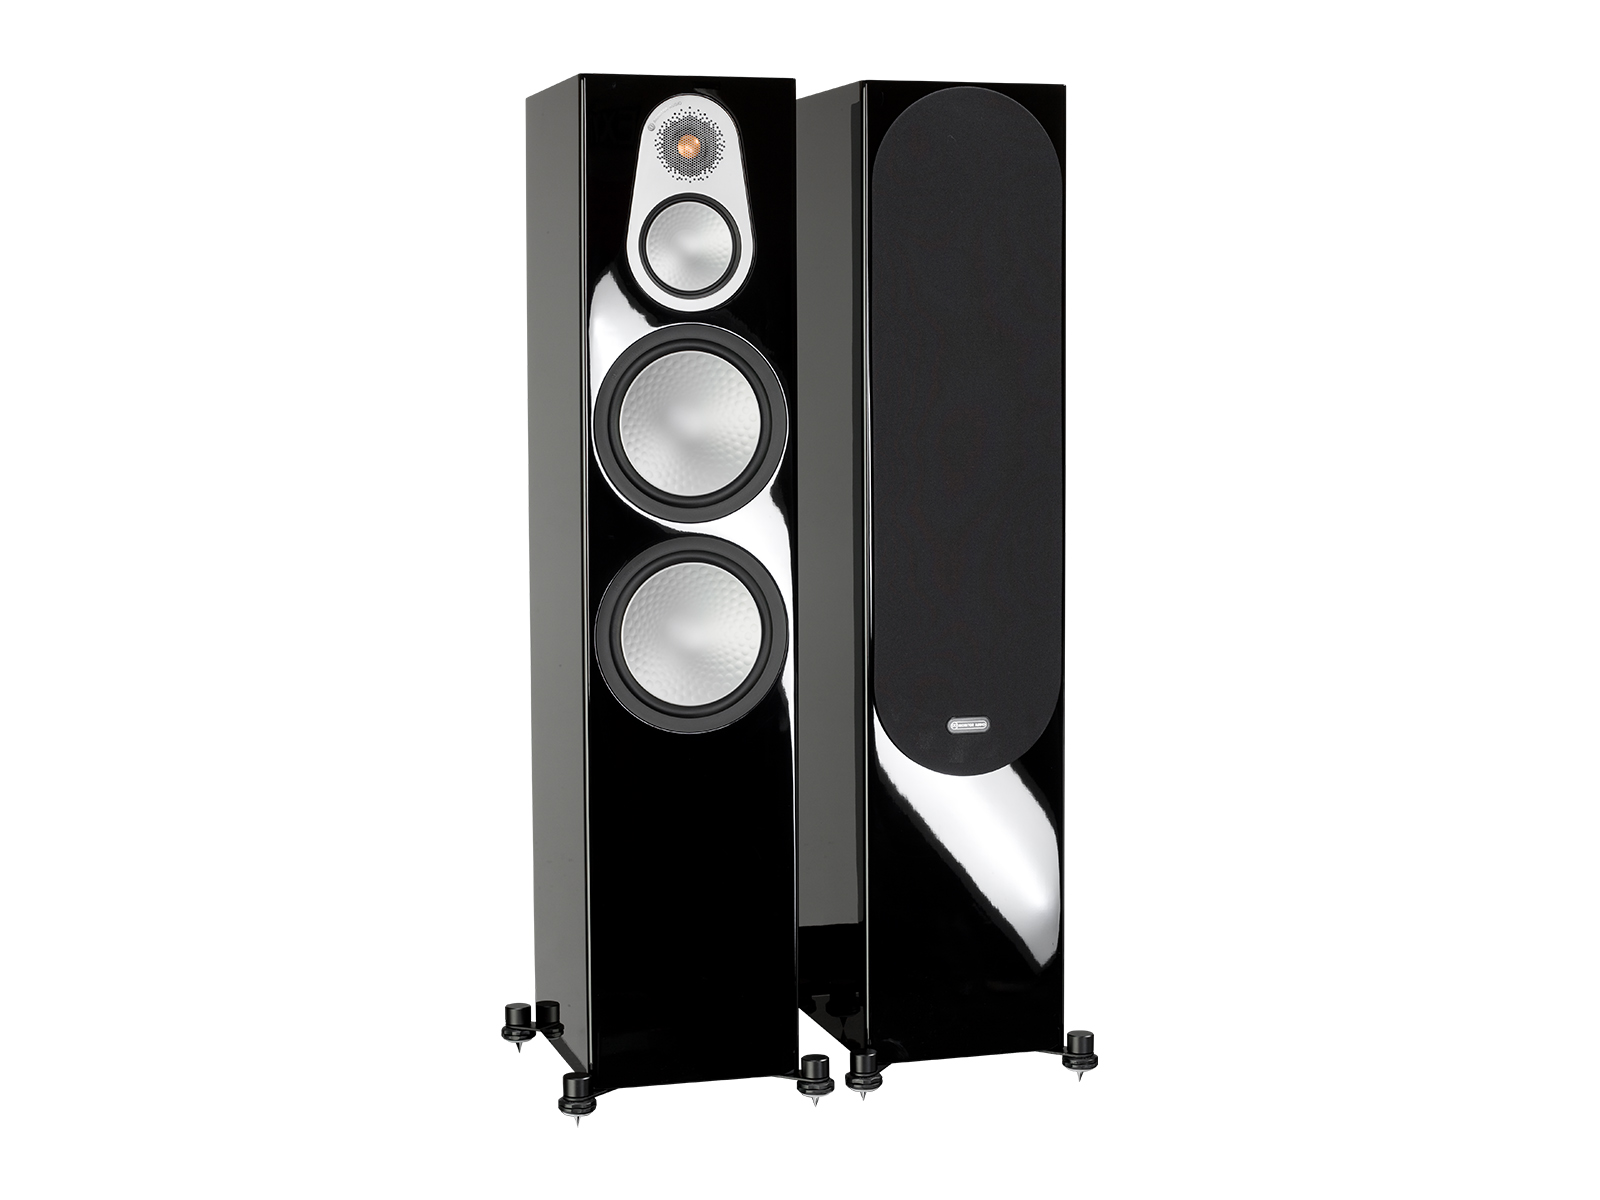 Silver 500, floorstanding speakers, with and without grille in a high gloss black finish.